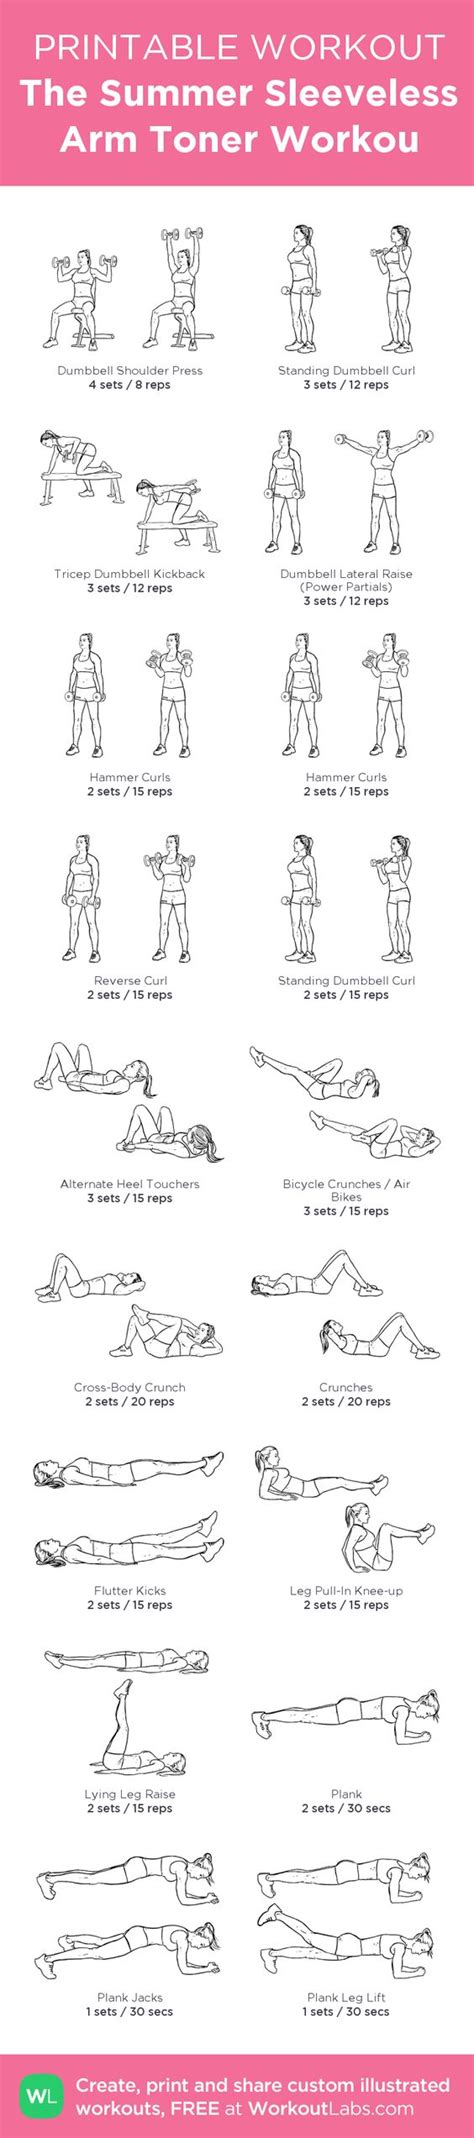 printable volleyball workouts printable workouts workout and summer on pinterest